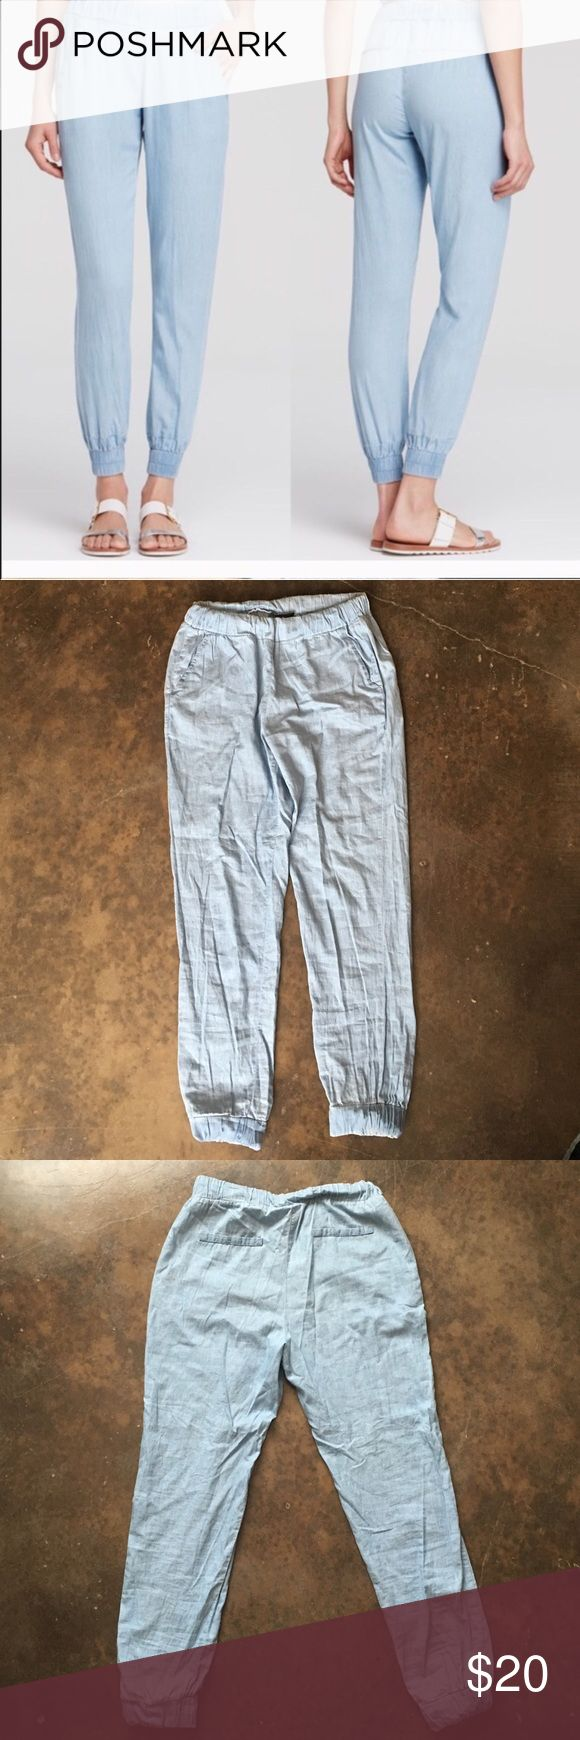 Chambray joggers Reposhing these since they didn't fit me. Soft elastic waistline, and elastic rouching on the ankles too. Very soft light chambray jean color. Front pockets are pretty deep, back pockets are faux. Aqua Pants Track Pants & Joggers